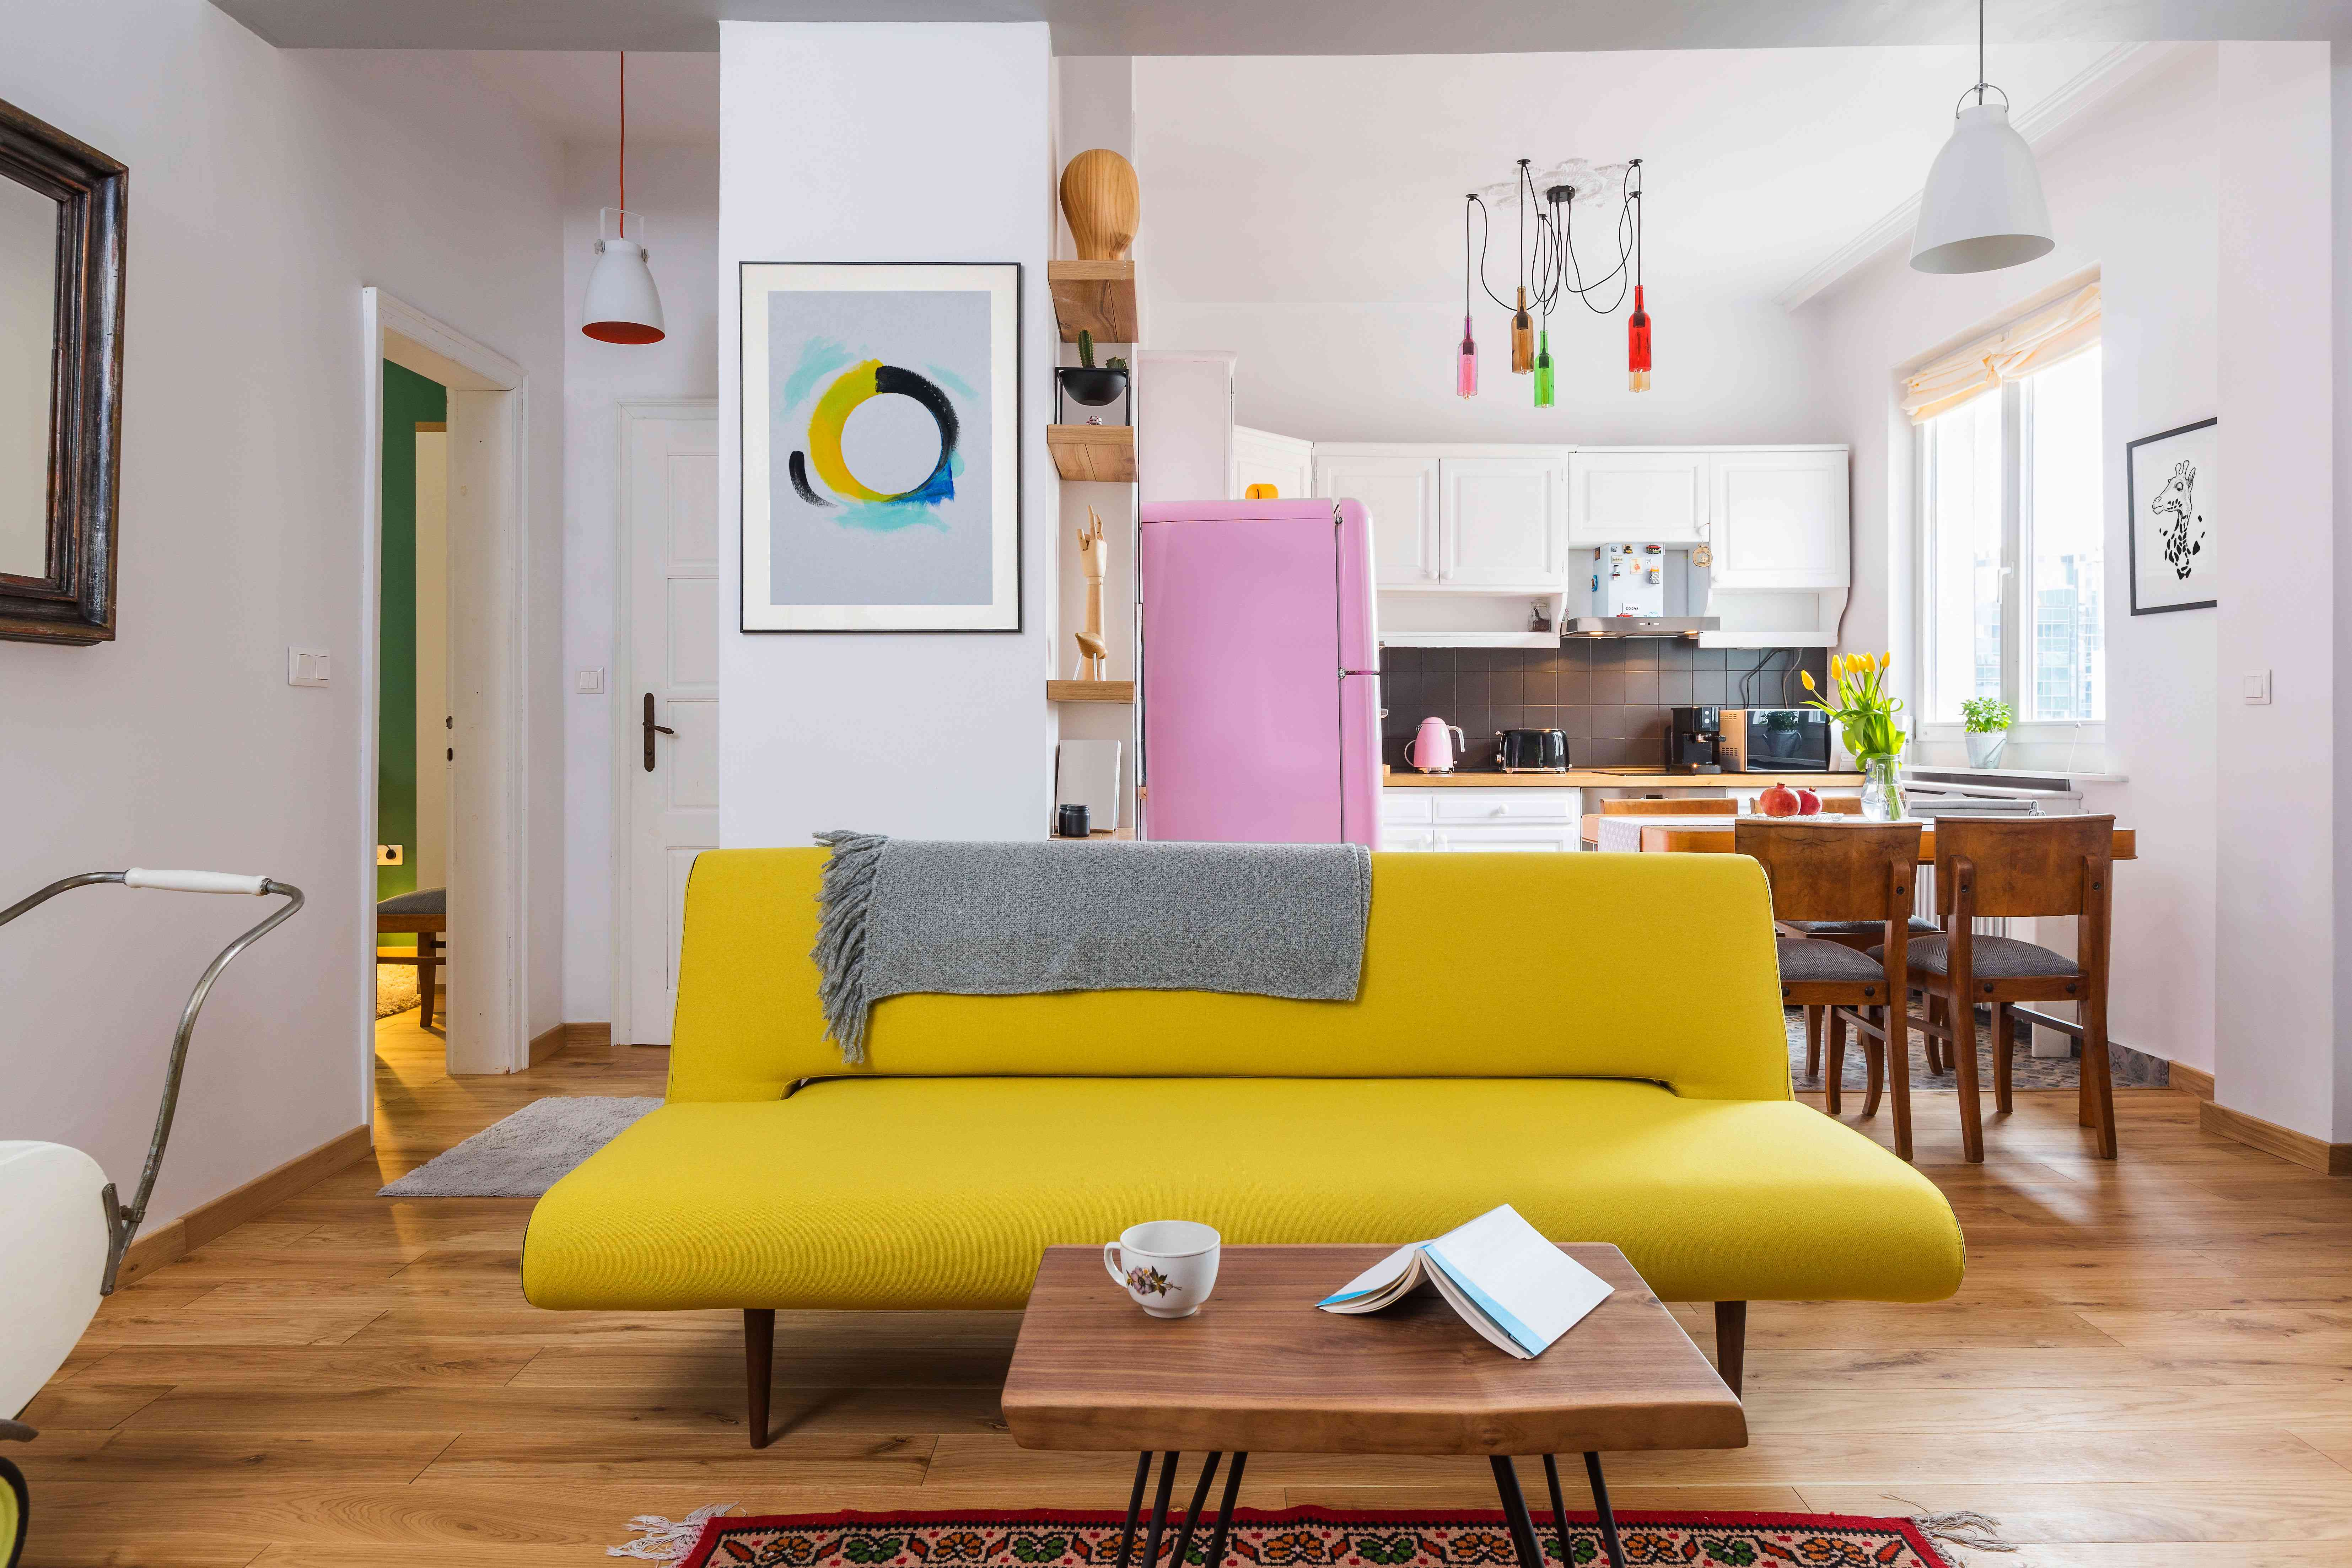 yellow sofa in a living room